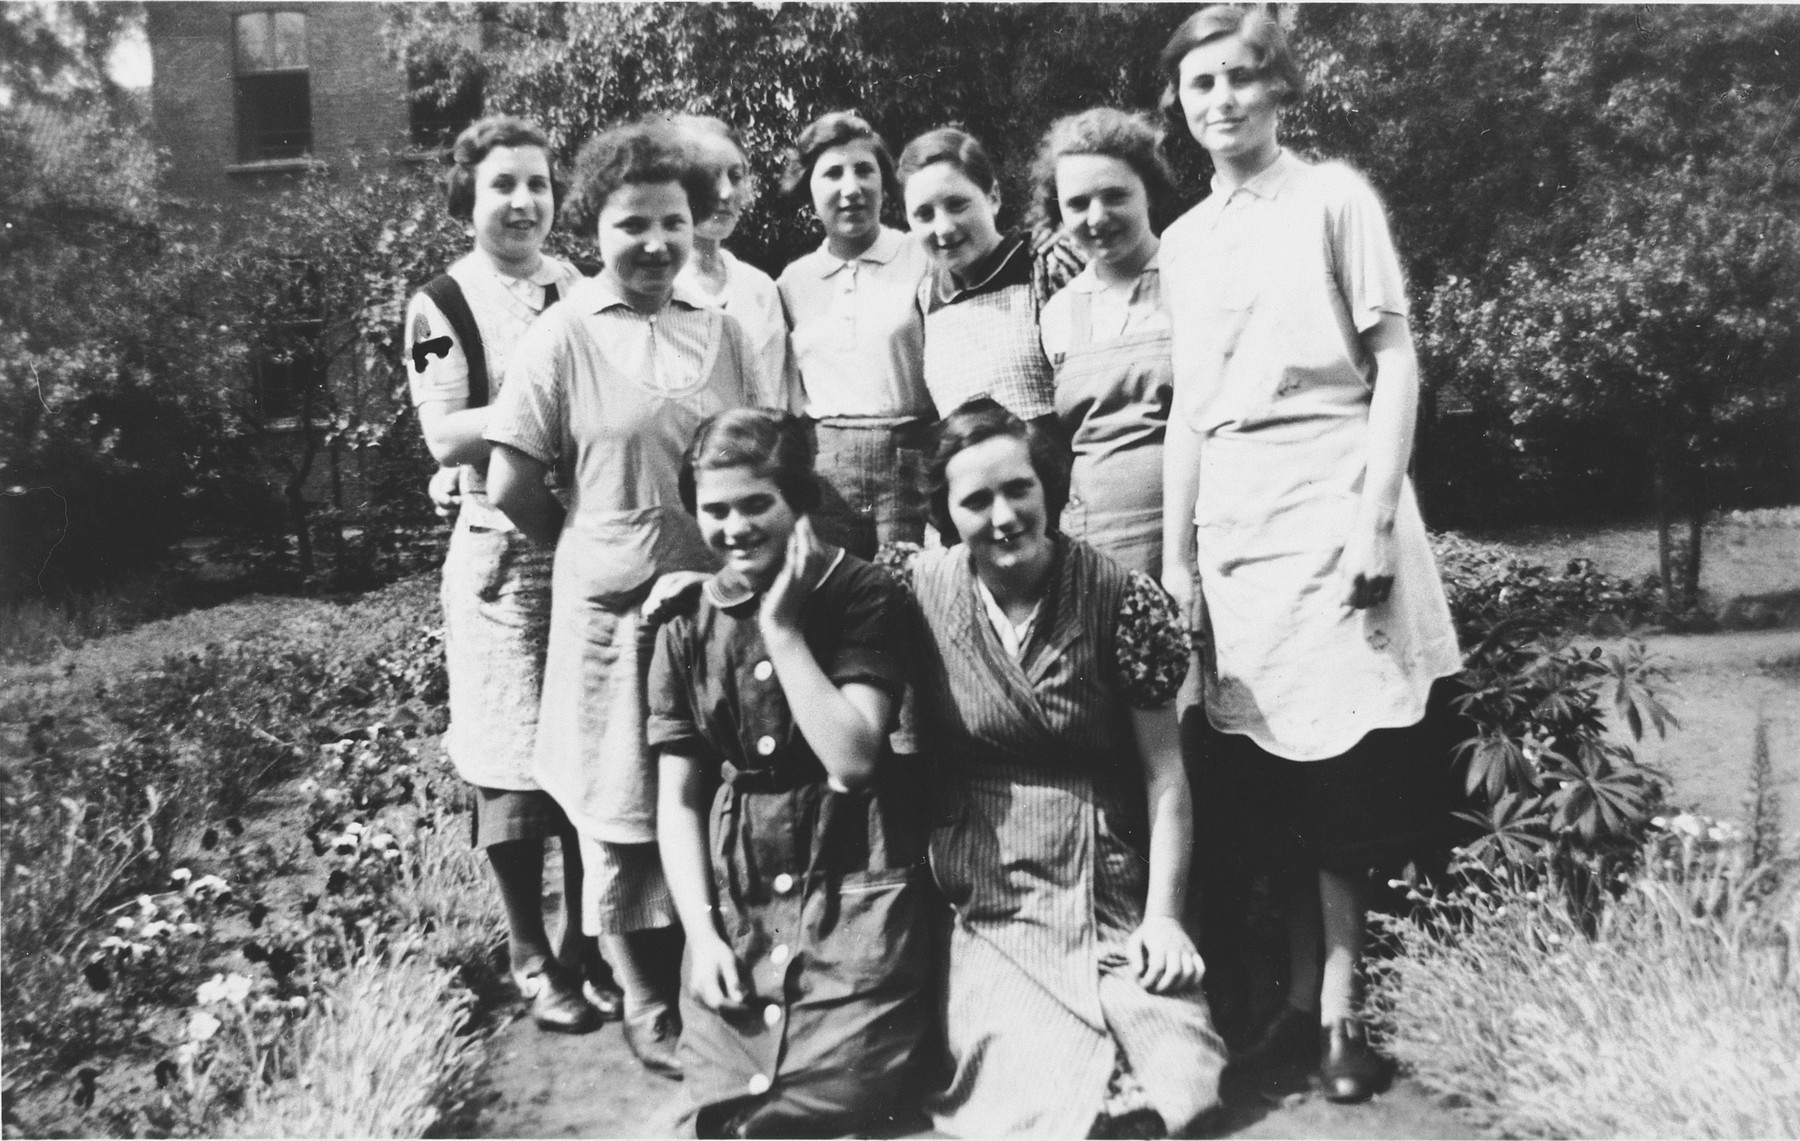 Group portrait of Jewish girls and teenagers in the Orthodox orphanage in Dinslaken, Germany prior to Kristallnacht  Pictured standing on the far right is Ruth Herz.